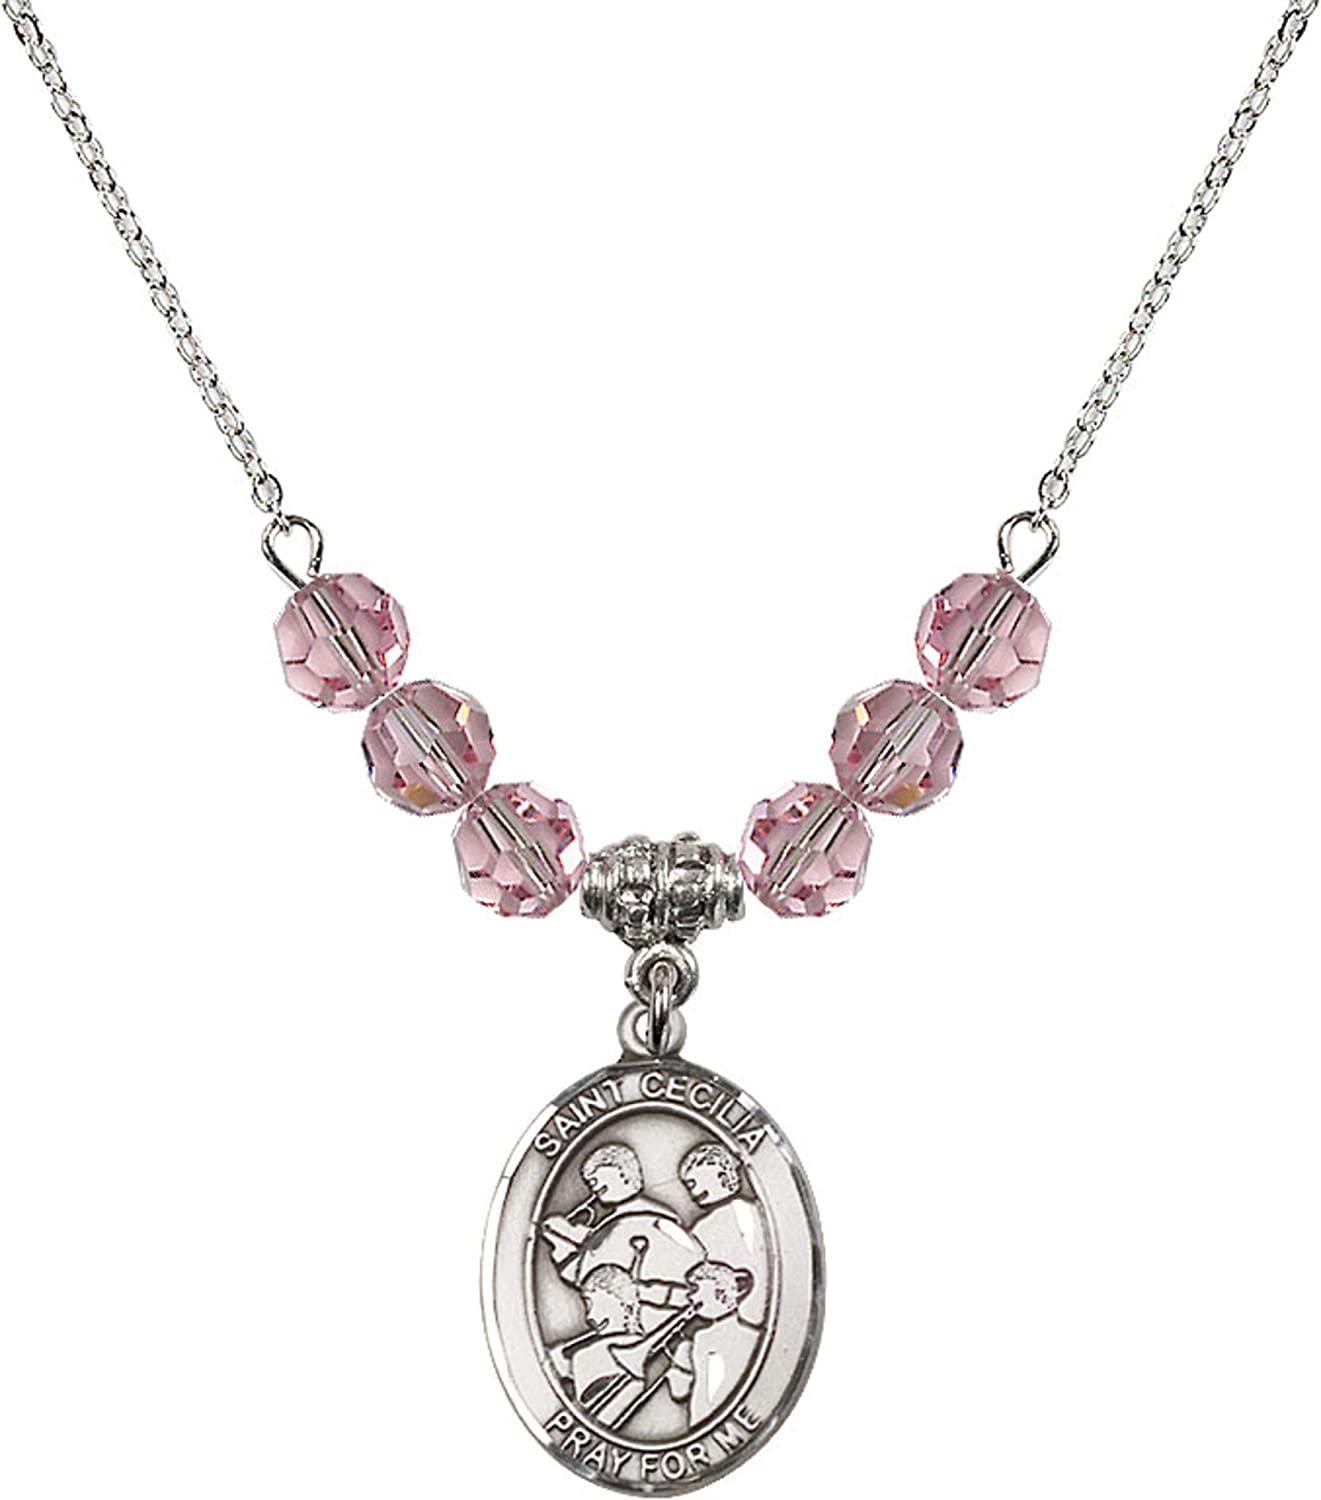 Bonyak Jewelry 18 Inch Rhodium Plated Necklace w// 6mm Light Rose Pink October Birth Month Stone Beads /& Saint Cecilia//Marching Band Charm